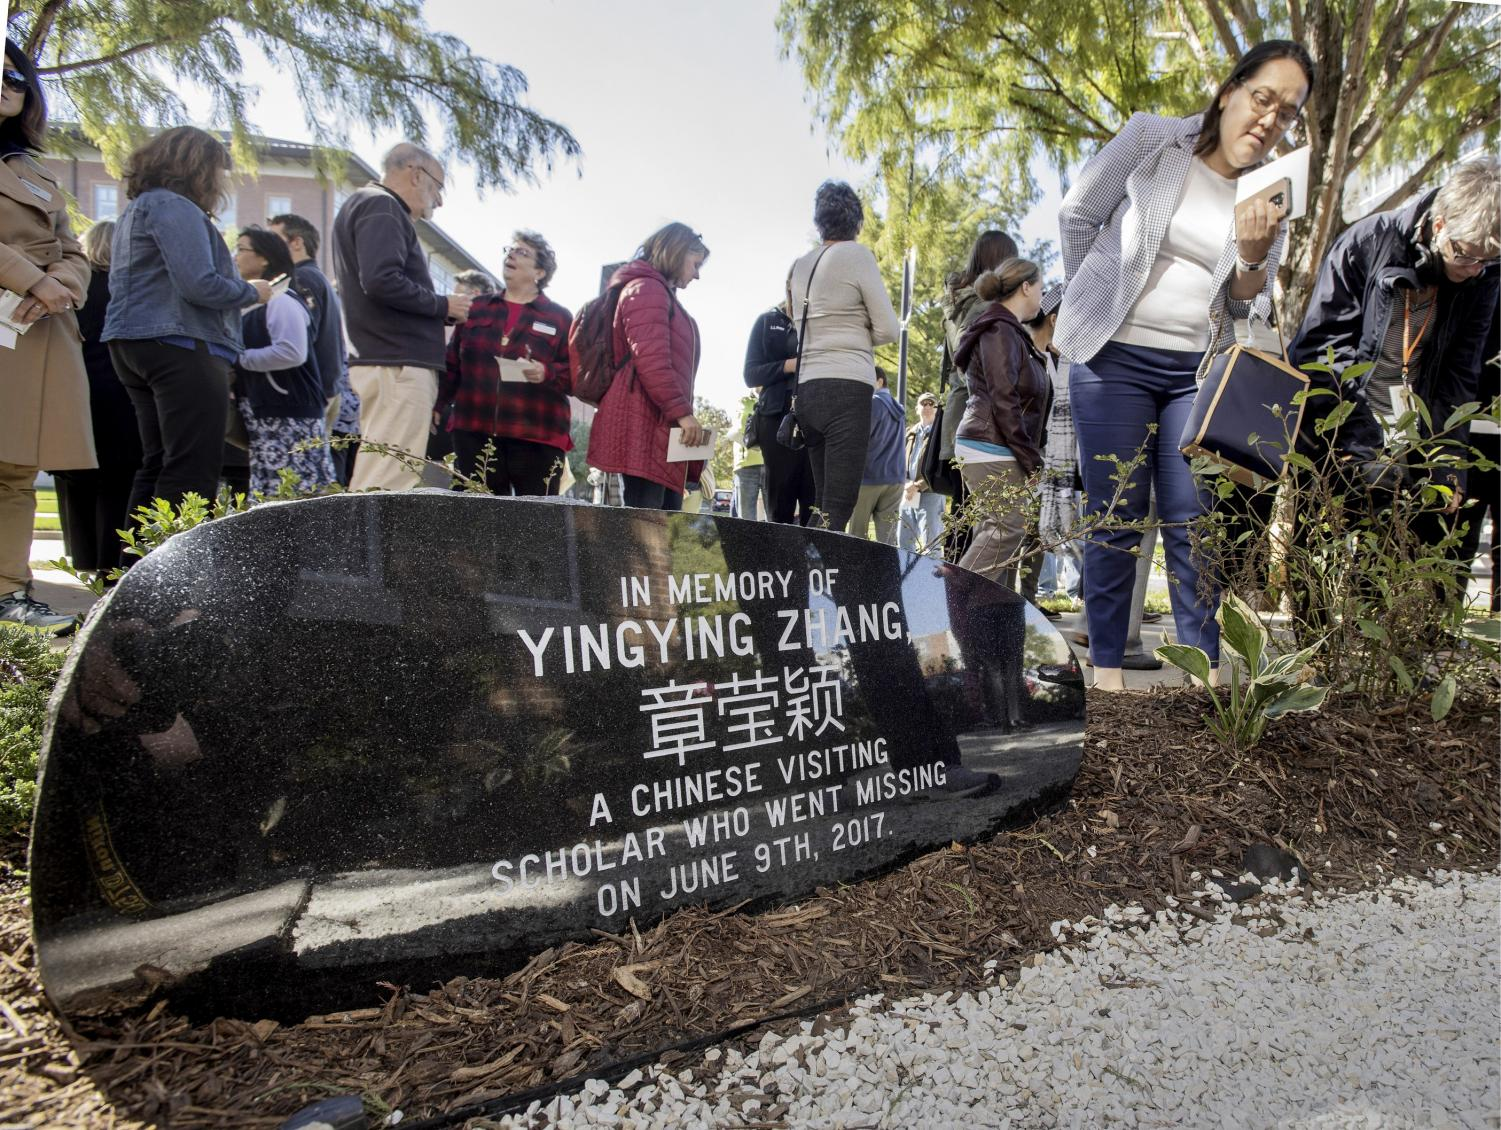 This Oct. 11, 2018, file photo shows guests mingling after a ceremony to dedicate the memorial garden for Yingying Zhang, Chinese scholar who disappeared from campus in June 2017. A judge at the trial of a former University of Illinois student charged with killing a visiting Chinese scholar says lawyers should be ready to deliver opening statements by the middle of next week. Thursday, June 6, 2019, is the fourth day of jury selection at Brendt Christensen's trial in Peoria.